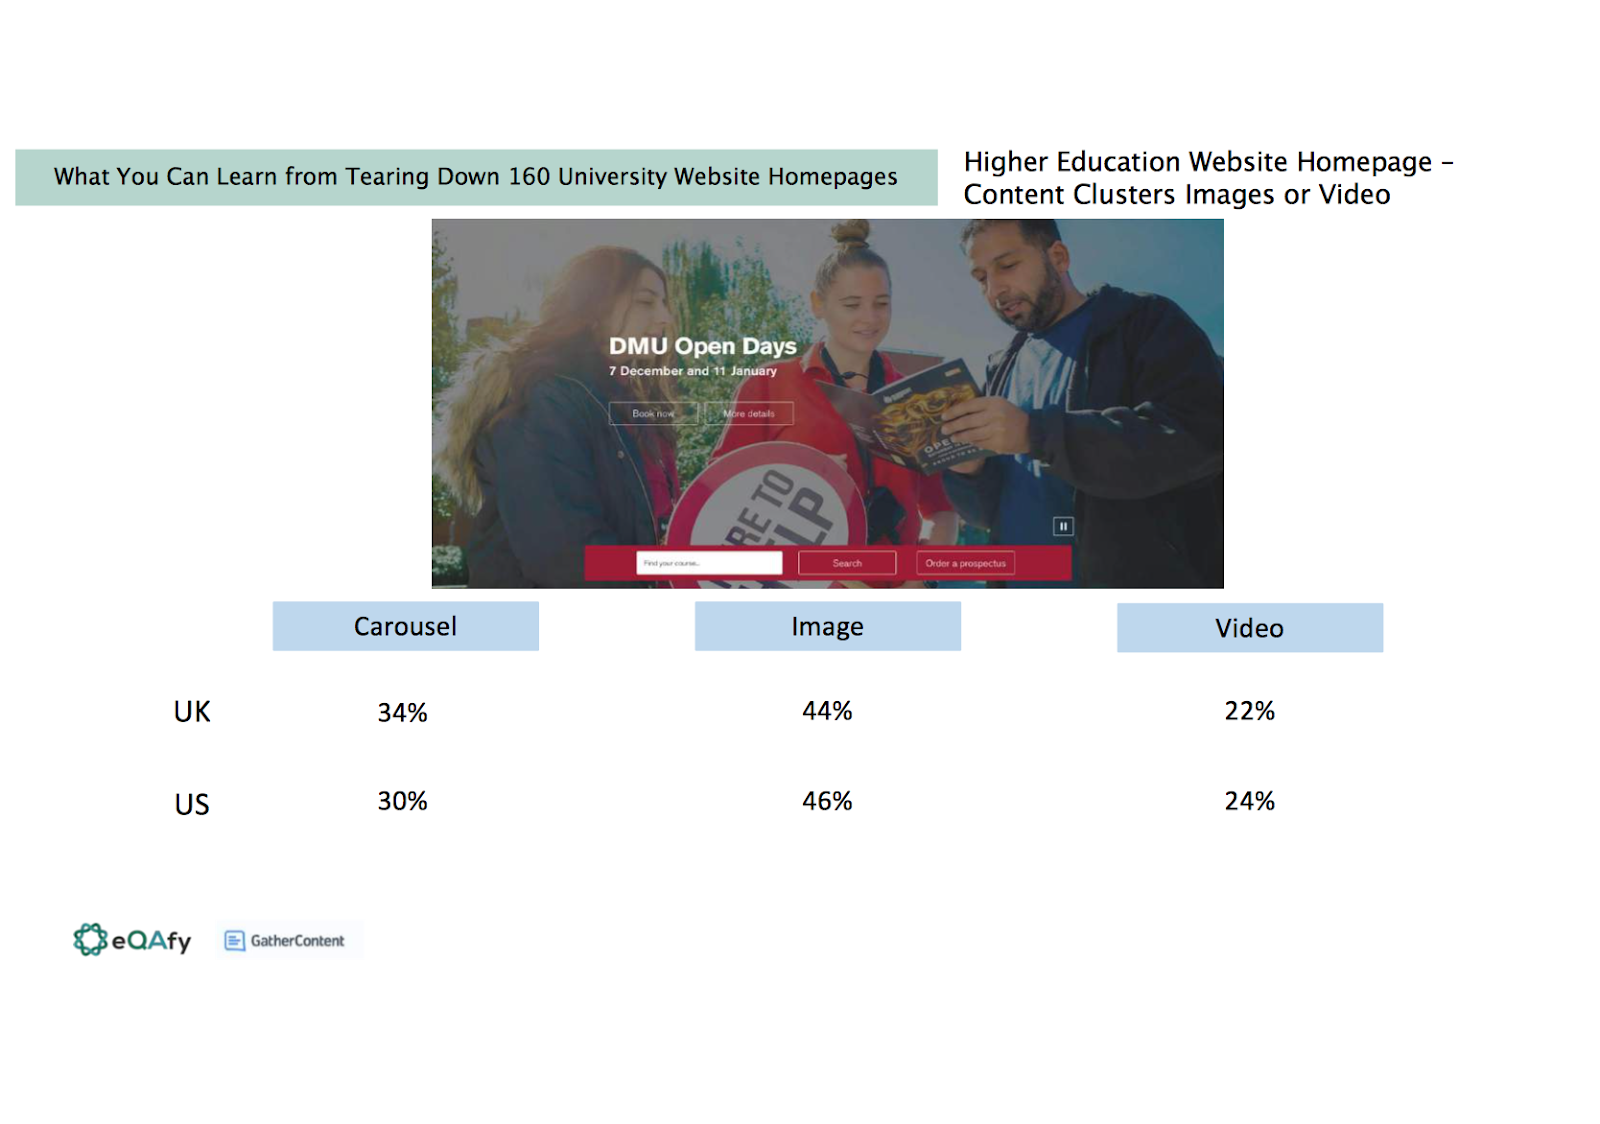 Slide shows carousel, image and video use on UK and US university homepages. The results show 34% of UK universities and 30% of US universities use a carousel. 44% of UK and 46% of US use images. 22% of UK and 24% of US use video.